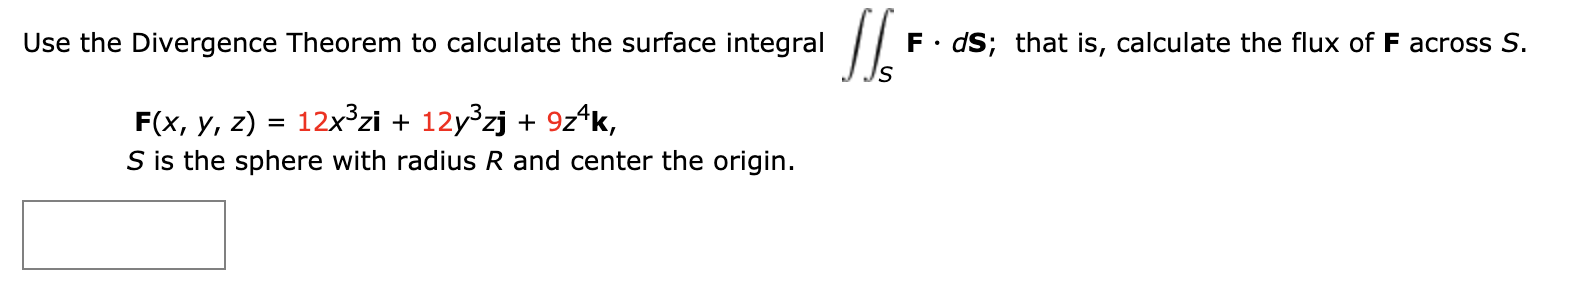 П. F• dS; that is, calculate the flux of F across S. Use the Divergence Theorem to calculate the surface integral 12x3zi + 12y zj + 9z^k, F(x, y, z) S is the sphere with radius R and center the origin.